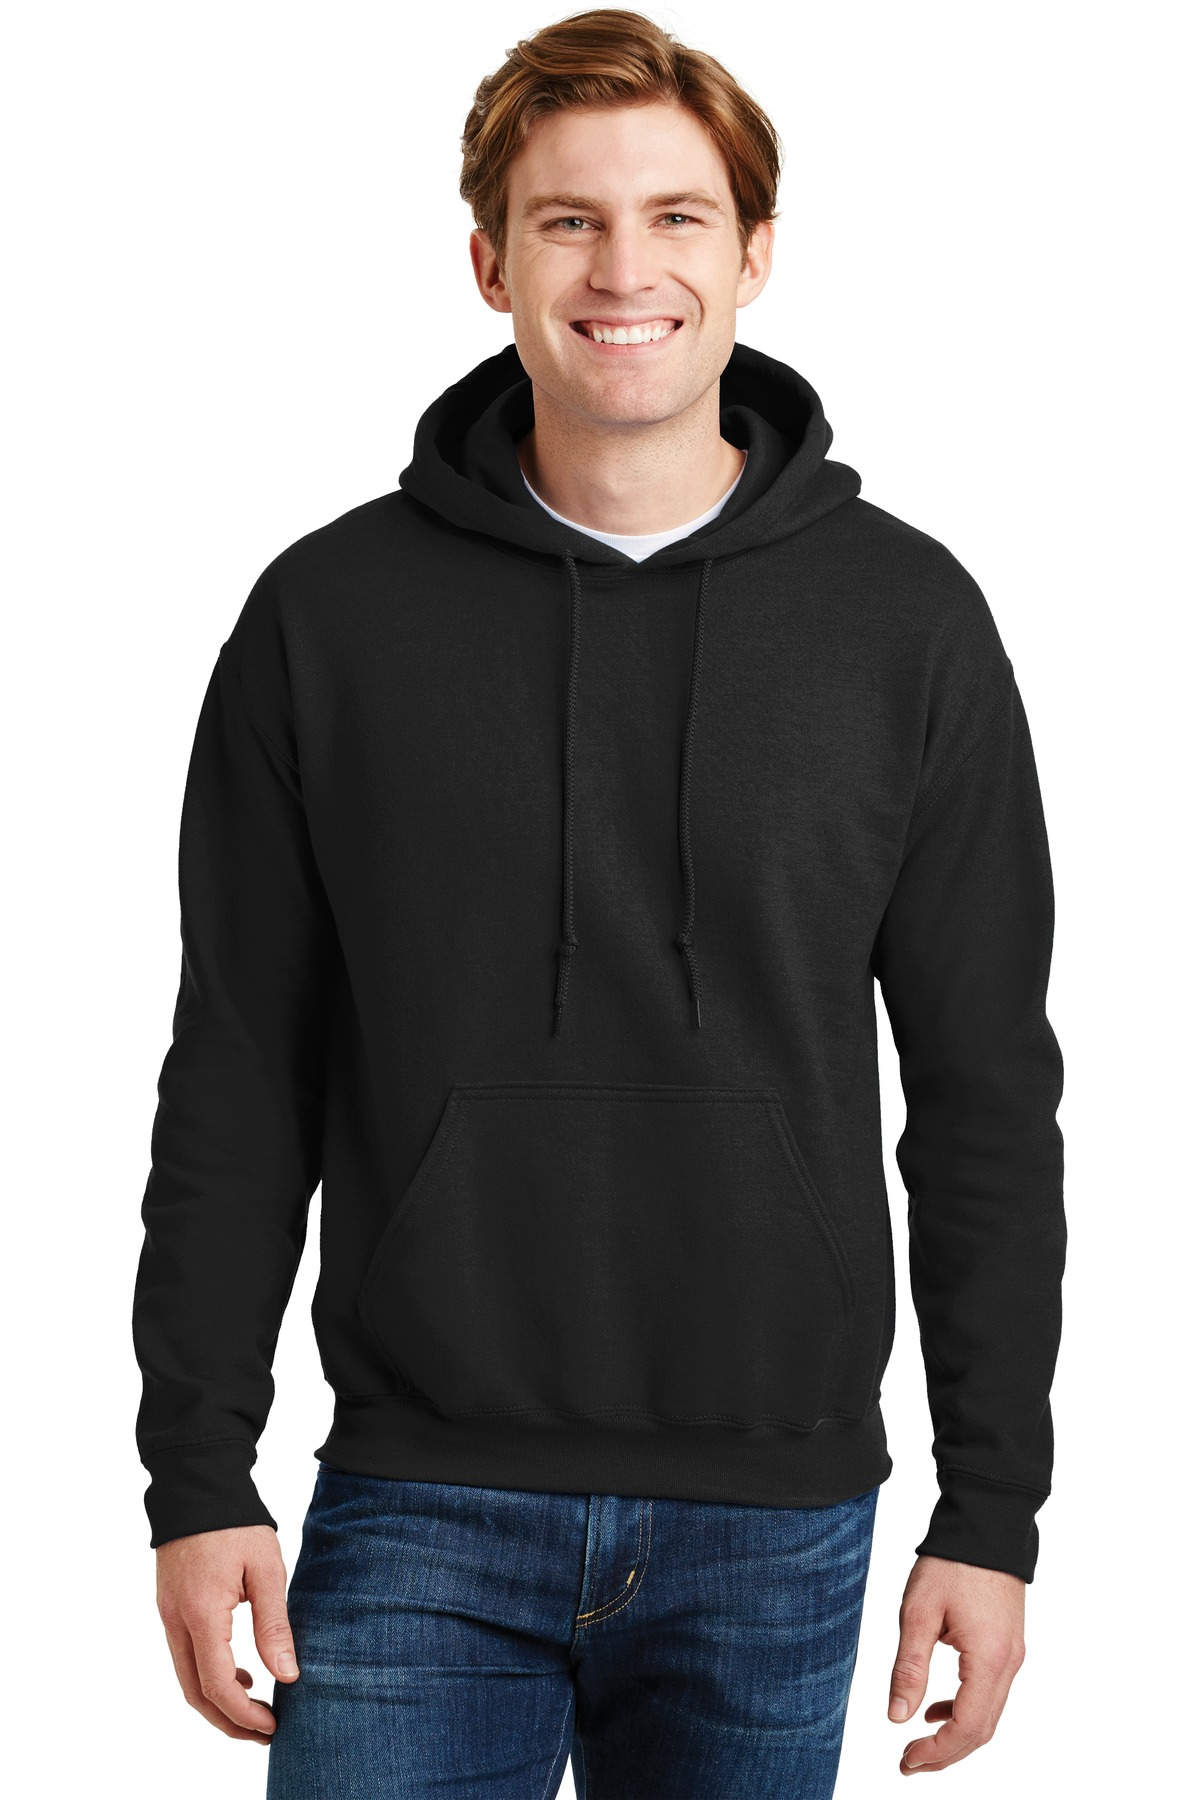 Gildan ®  - DryBlend ®  Pullover Hooded Sweatshirt.  12500 - Black